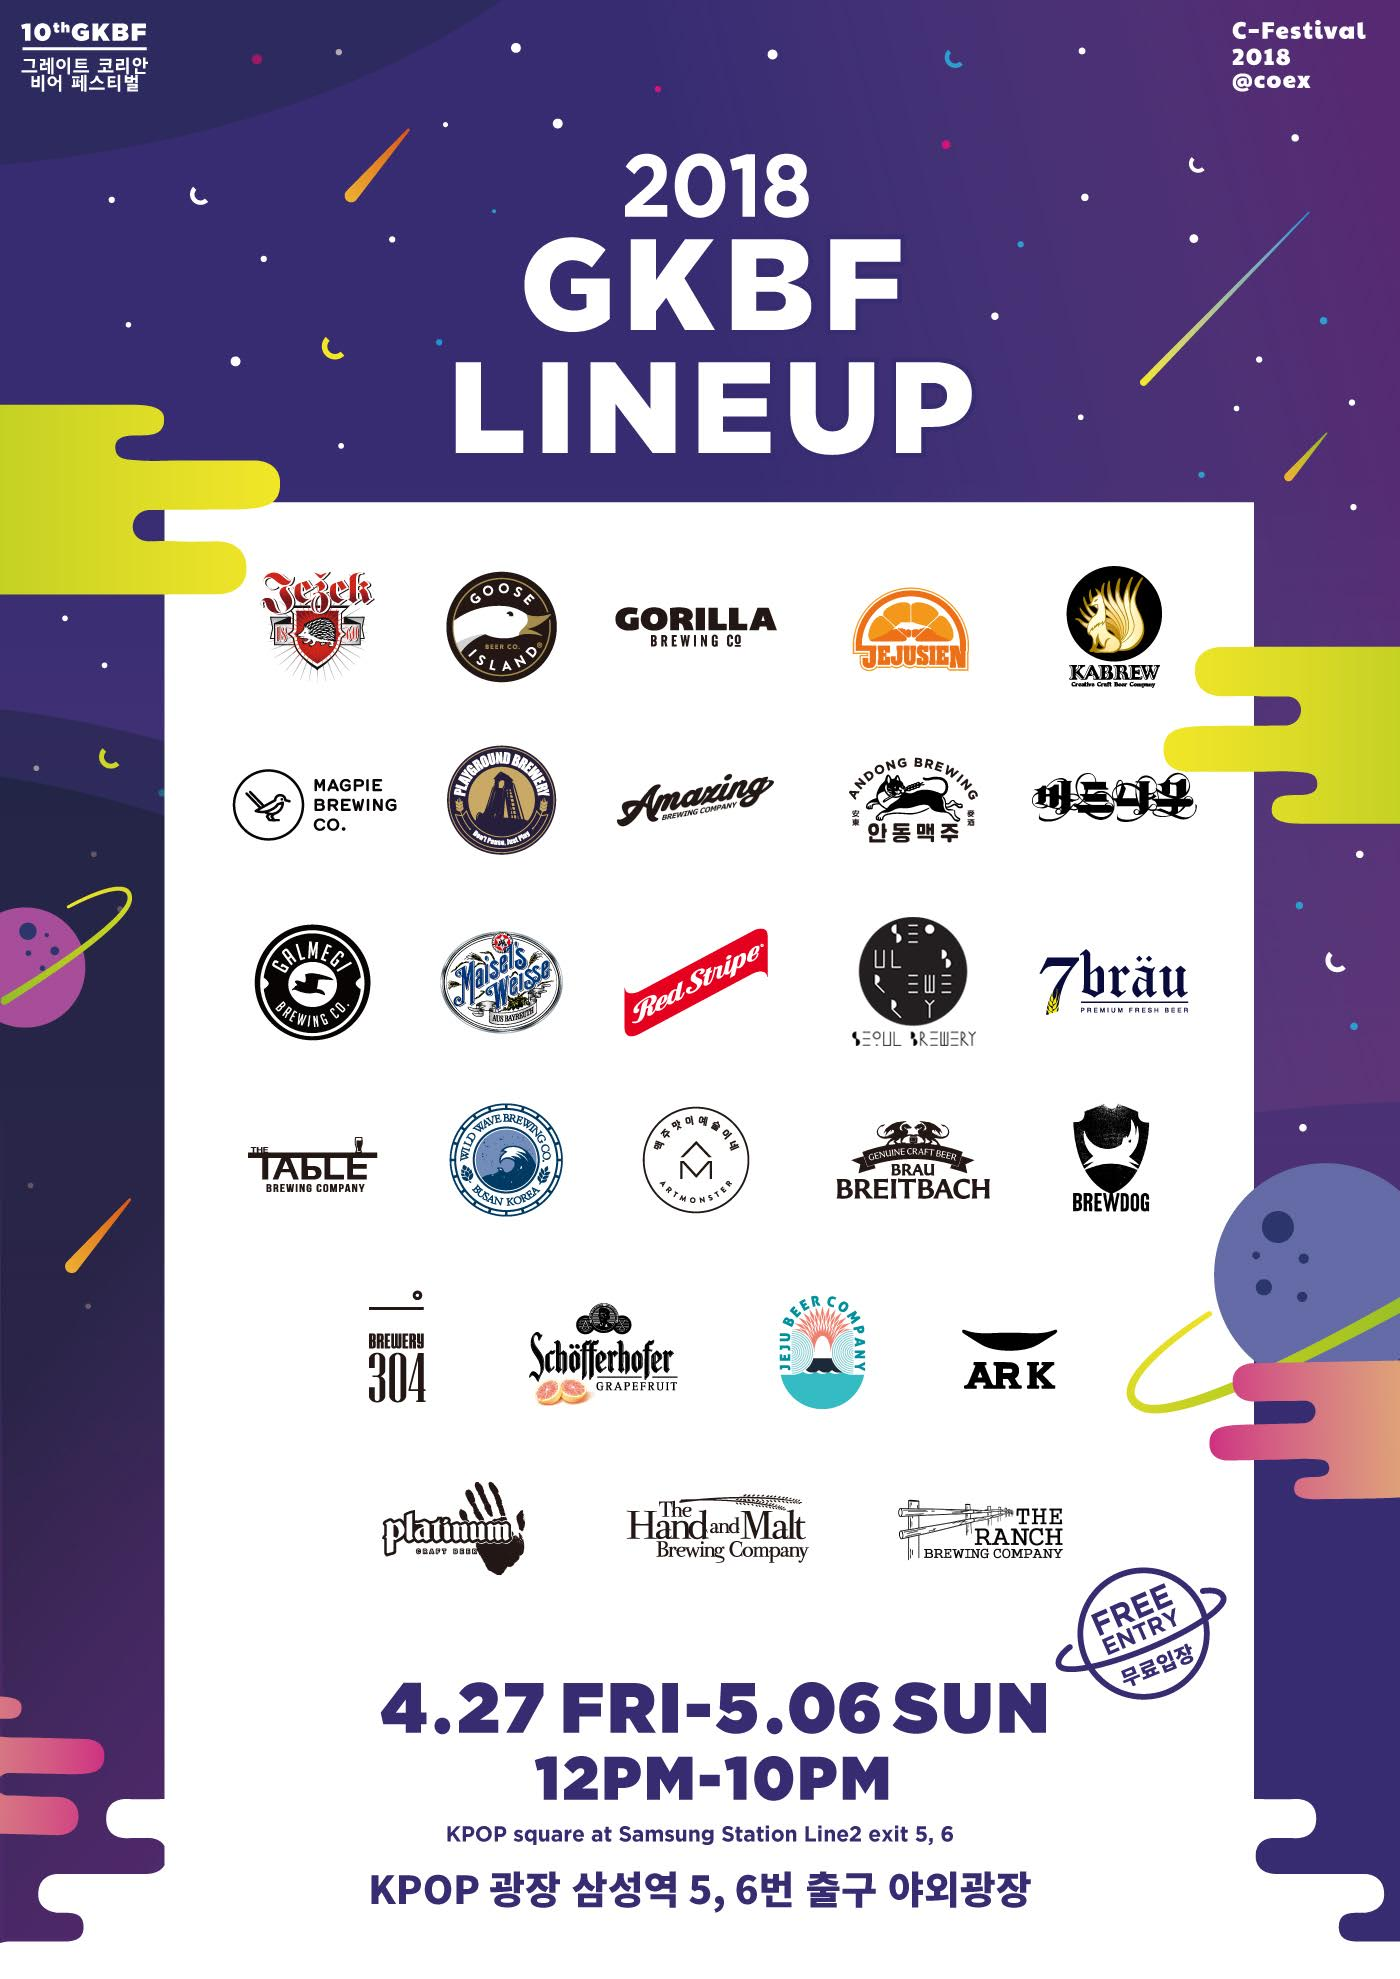 Great Korean Beer festival event poster, list of local breweries attending the event. Best Korean craft beer on tap!